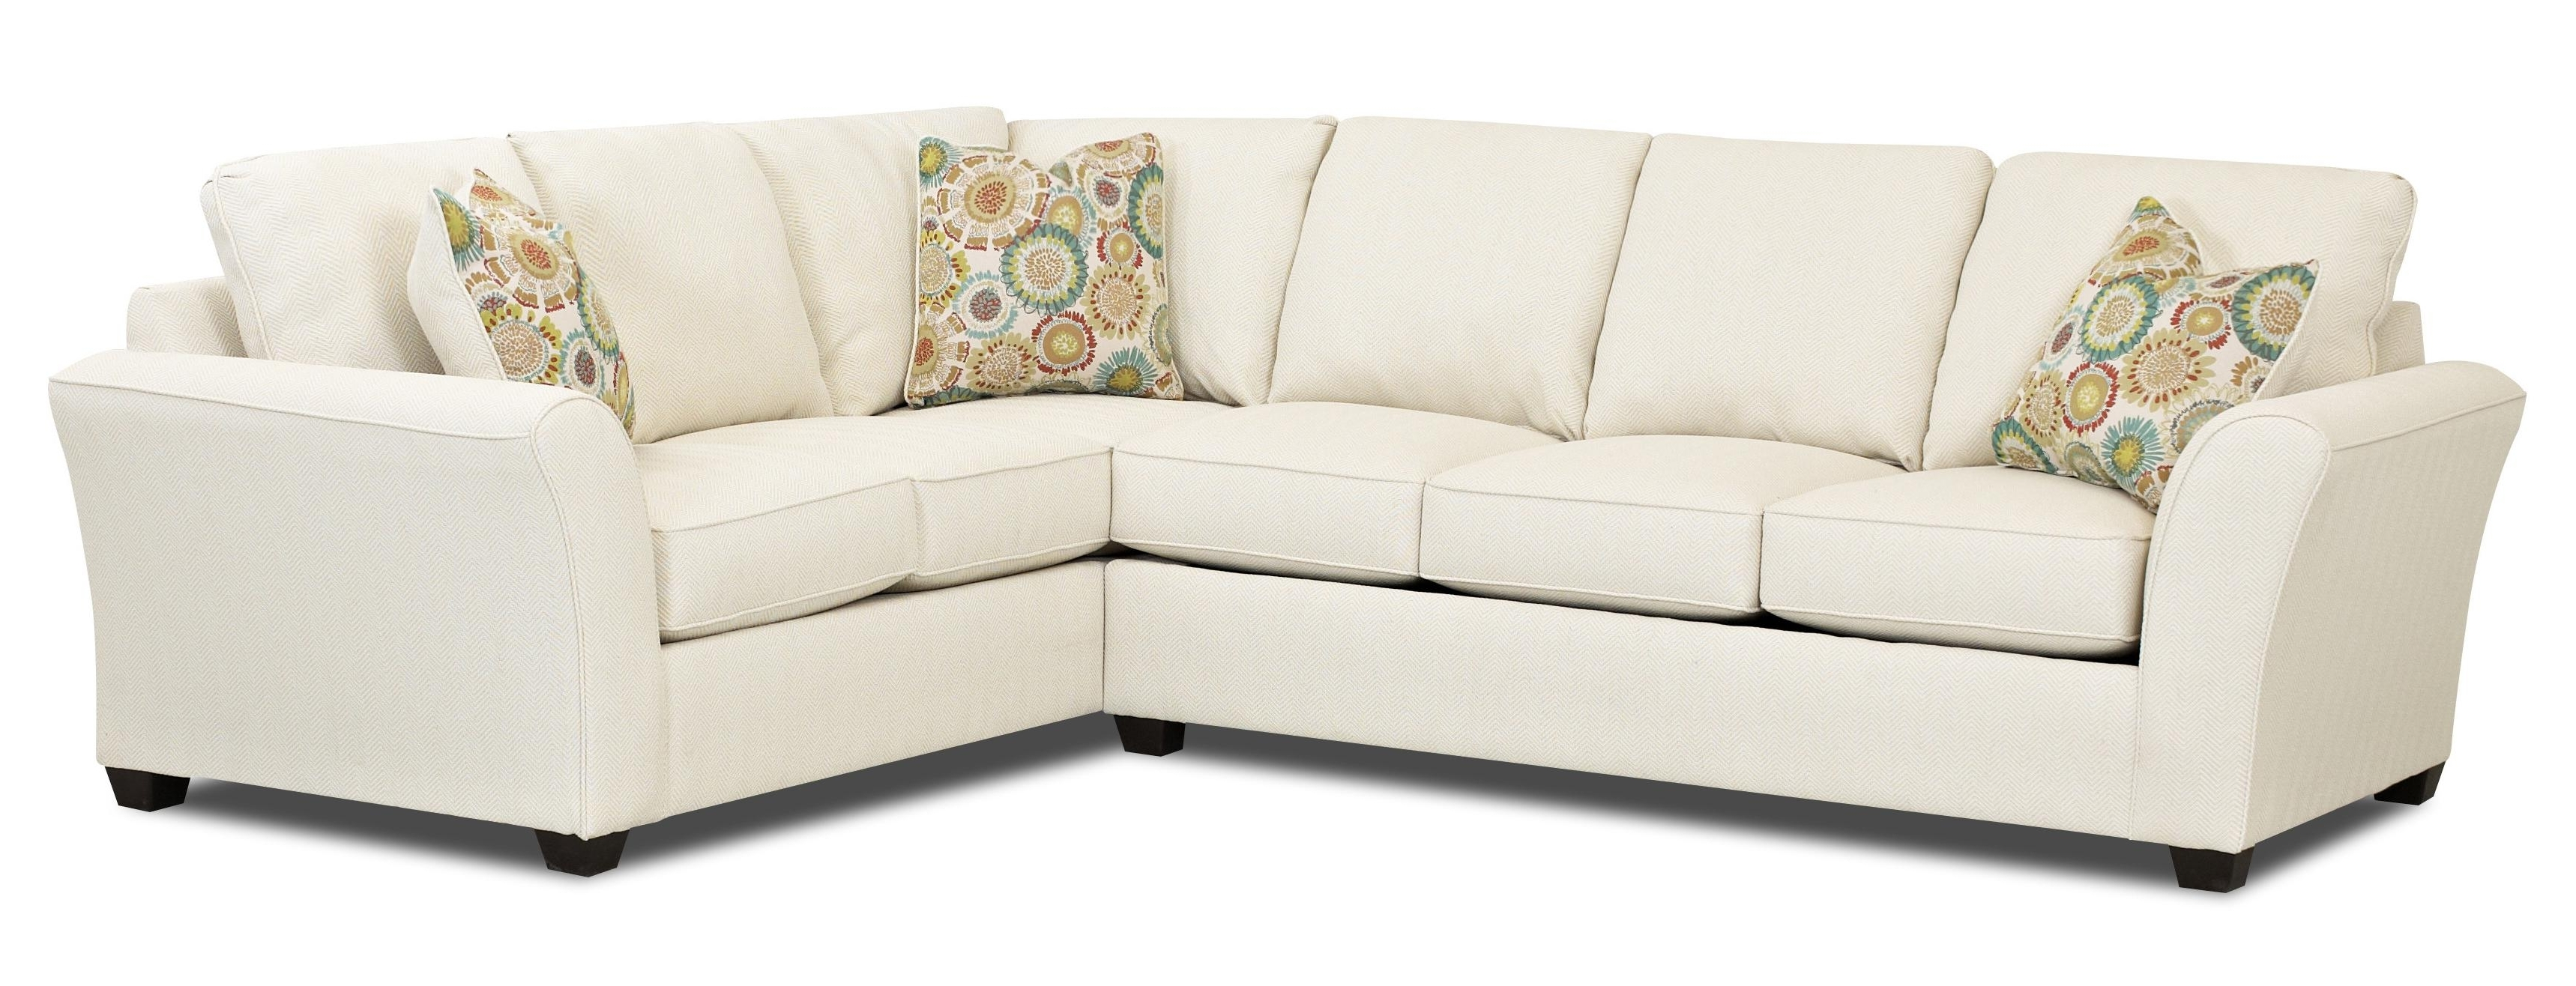 Transitional Sectional Sleeper Sofa With Dreamquest Mattress Throughout Favorite Sectional Sofas With Queen Size Sleeper (View 17 of 20)